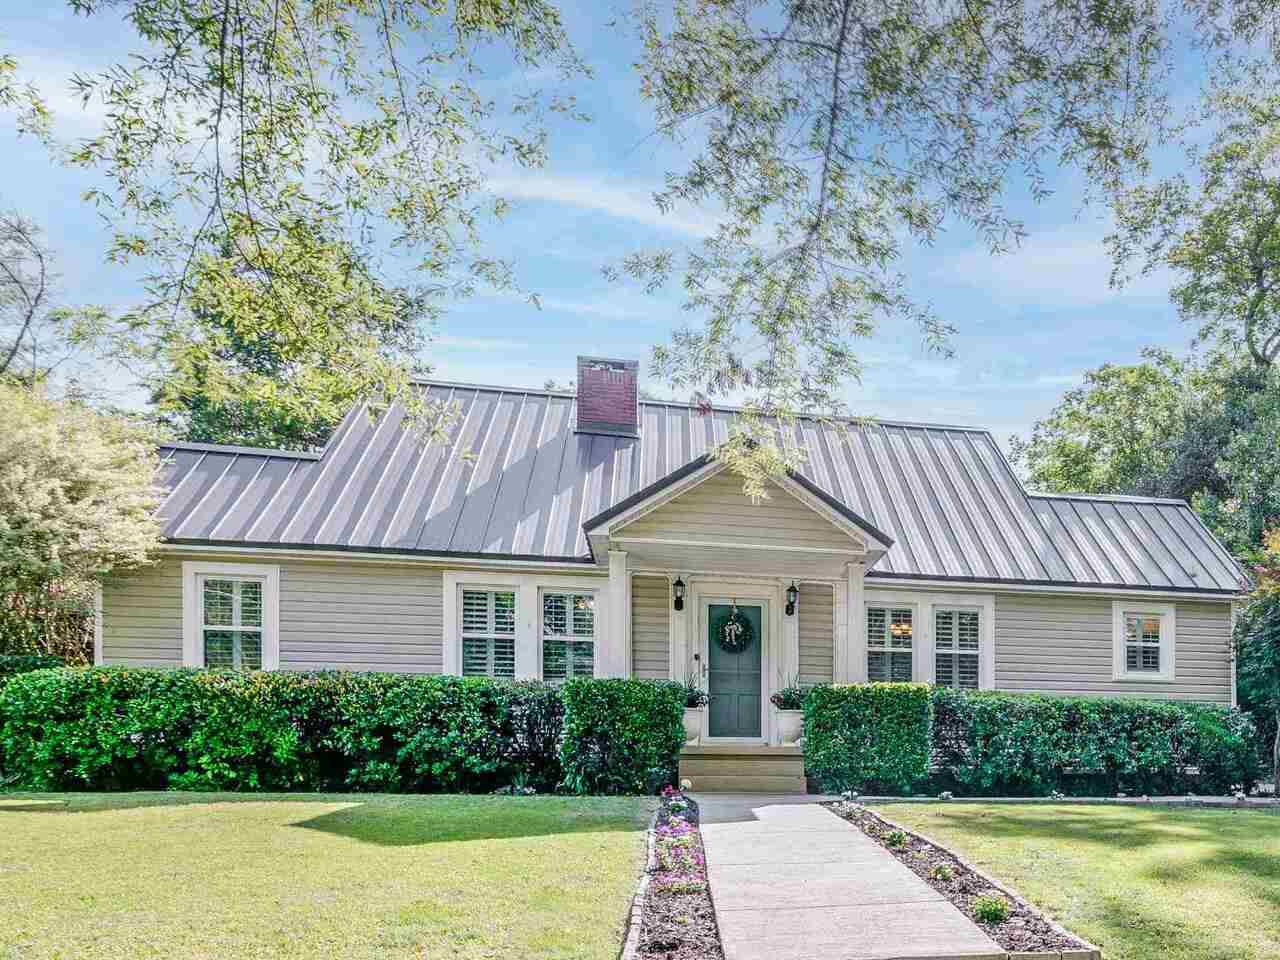 203 S Madison, Eatonton, GA 31024 - MLS#: 8973759